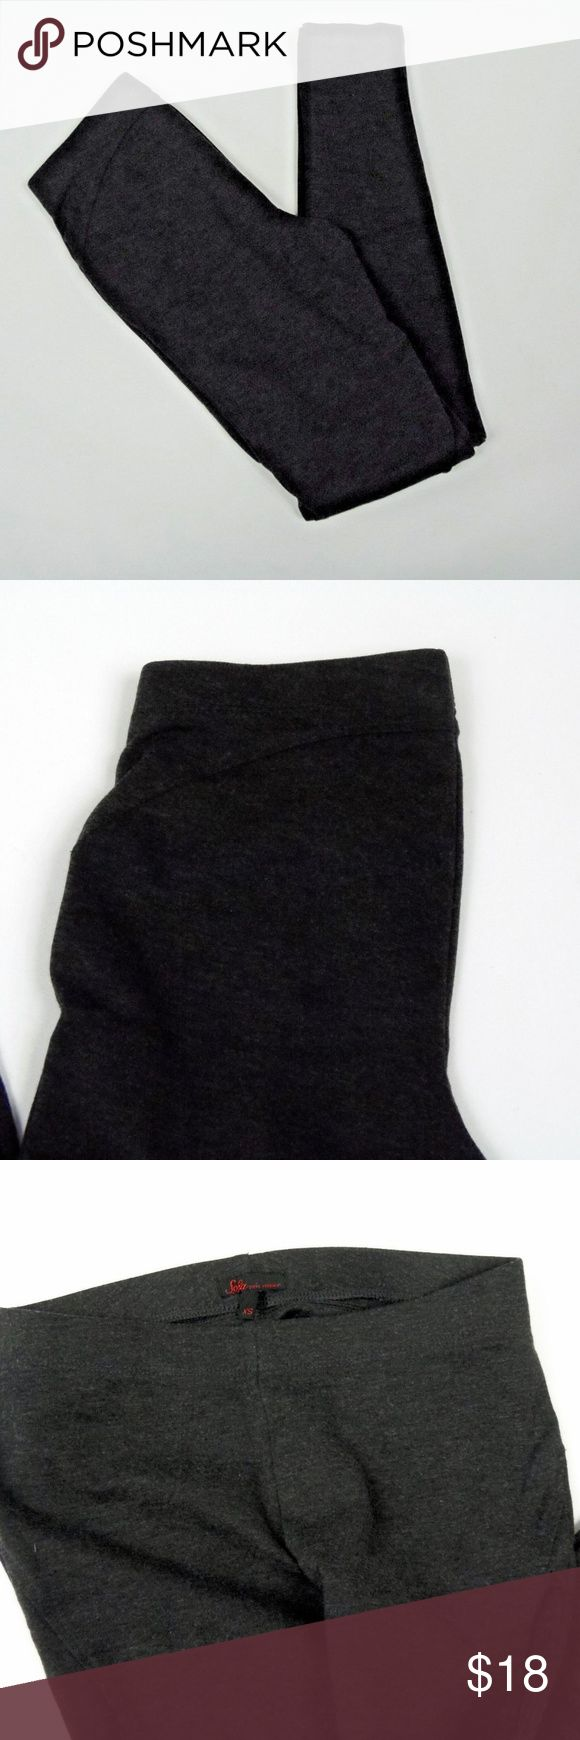 "Sofia Vergara Charcoal Heather leggings, Size XS Sofia Vergara leggings  Color: Charcoal Heather Size - XS   approximate measurements: waist 12""  inseam 28"" 72%Polyester, 24% Rayon, 4% Spandex RN 123475 Excellent Used Condition Sofia Vergara Pants Leggings"